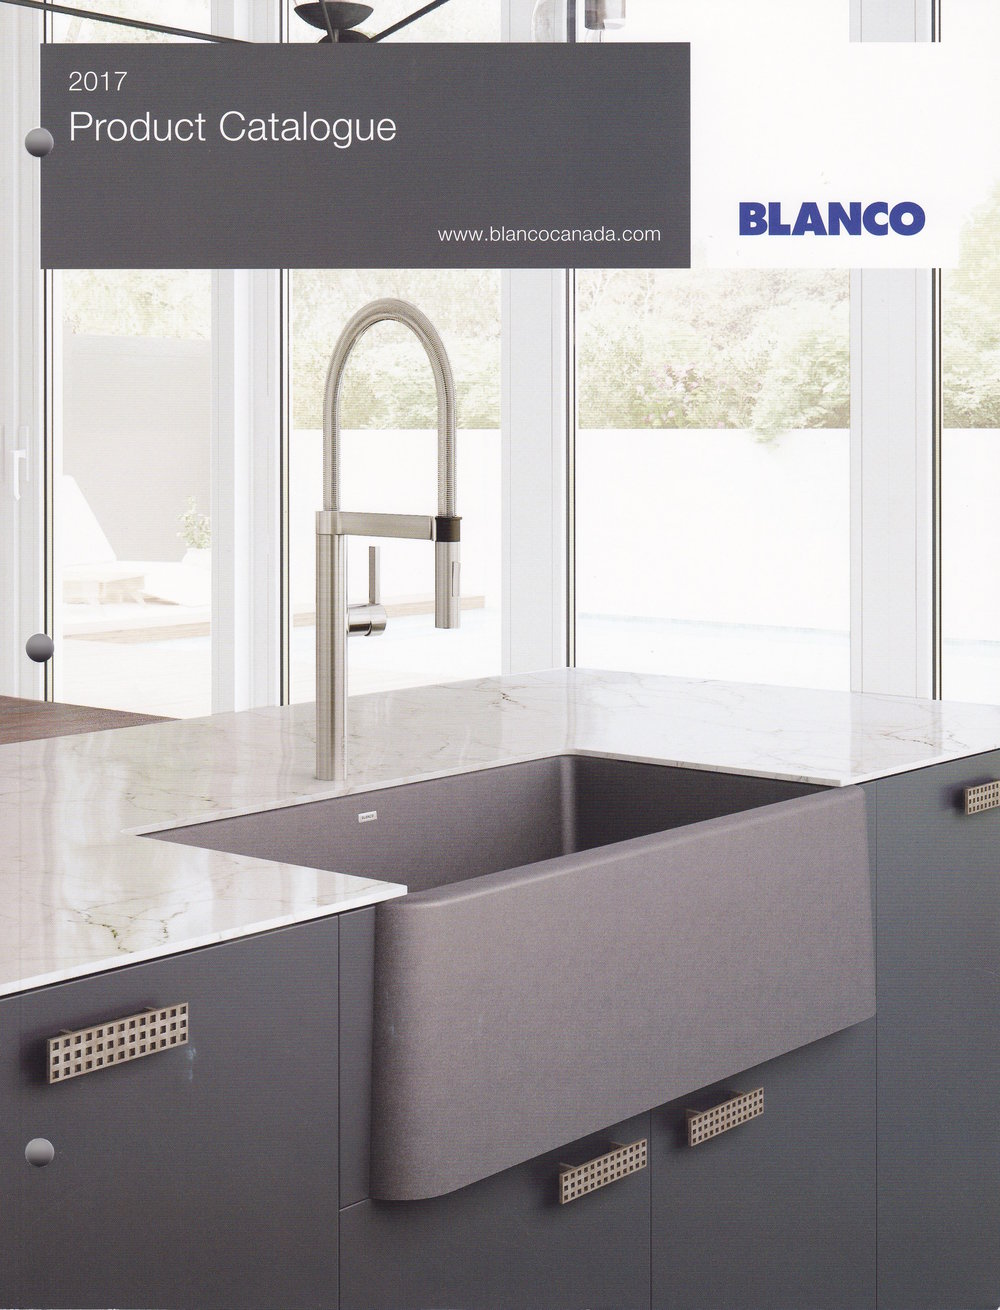 BLANCO Canada Product Catalogue